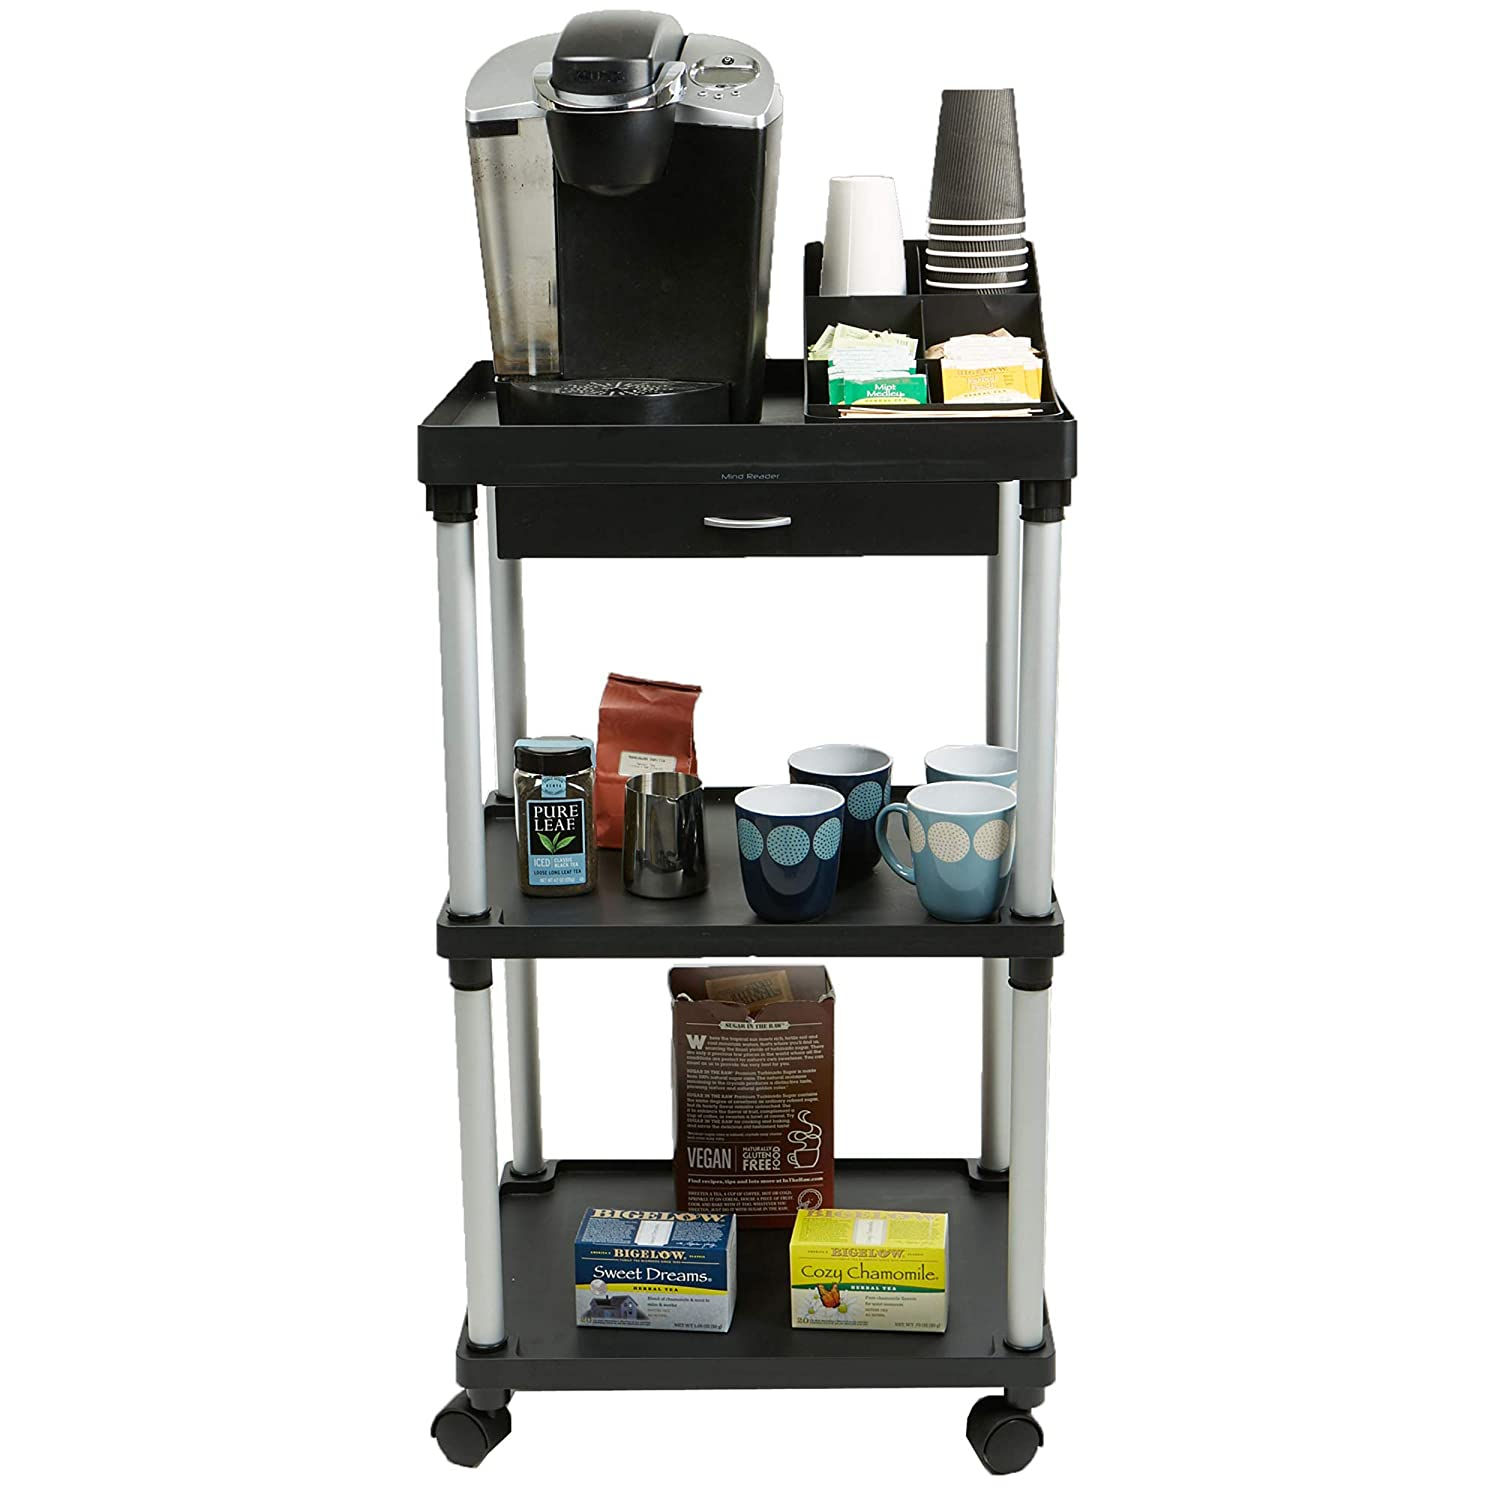 Mind Reader All Purpose Rolling Cart, Printer Cart, Utility Cart, Kitchen Cart, Coffee Cart, Microwave Cart, Bathroom Cart, 3 Tier, Black with Free Condiment Organizer